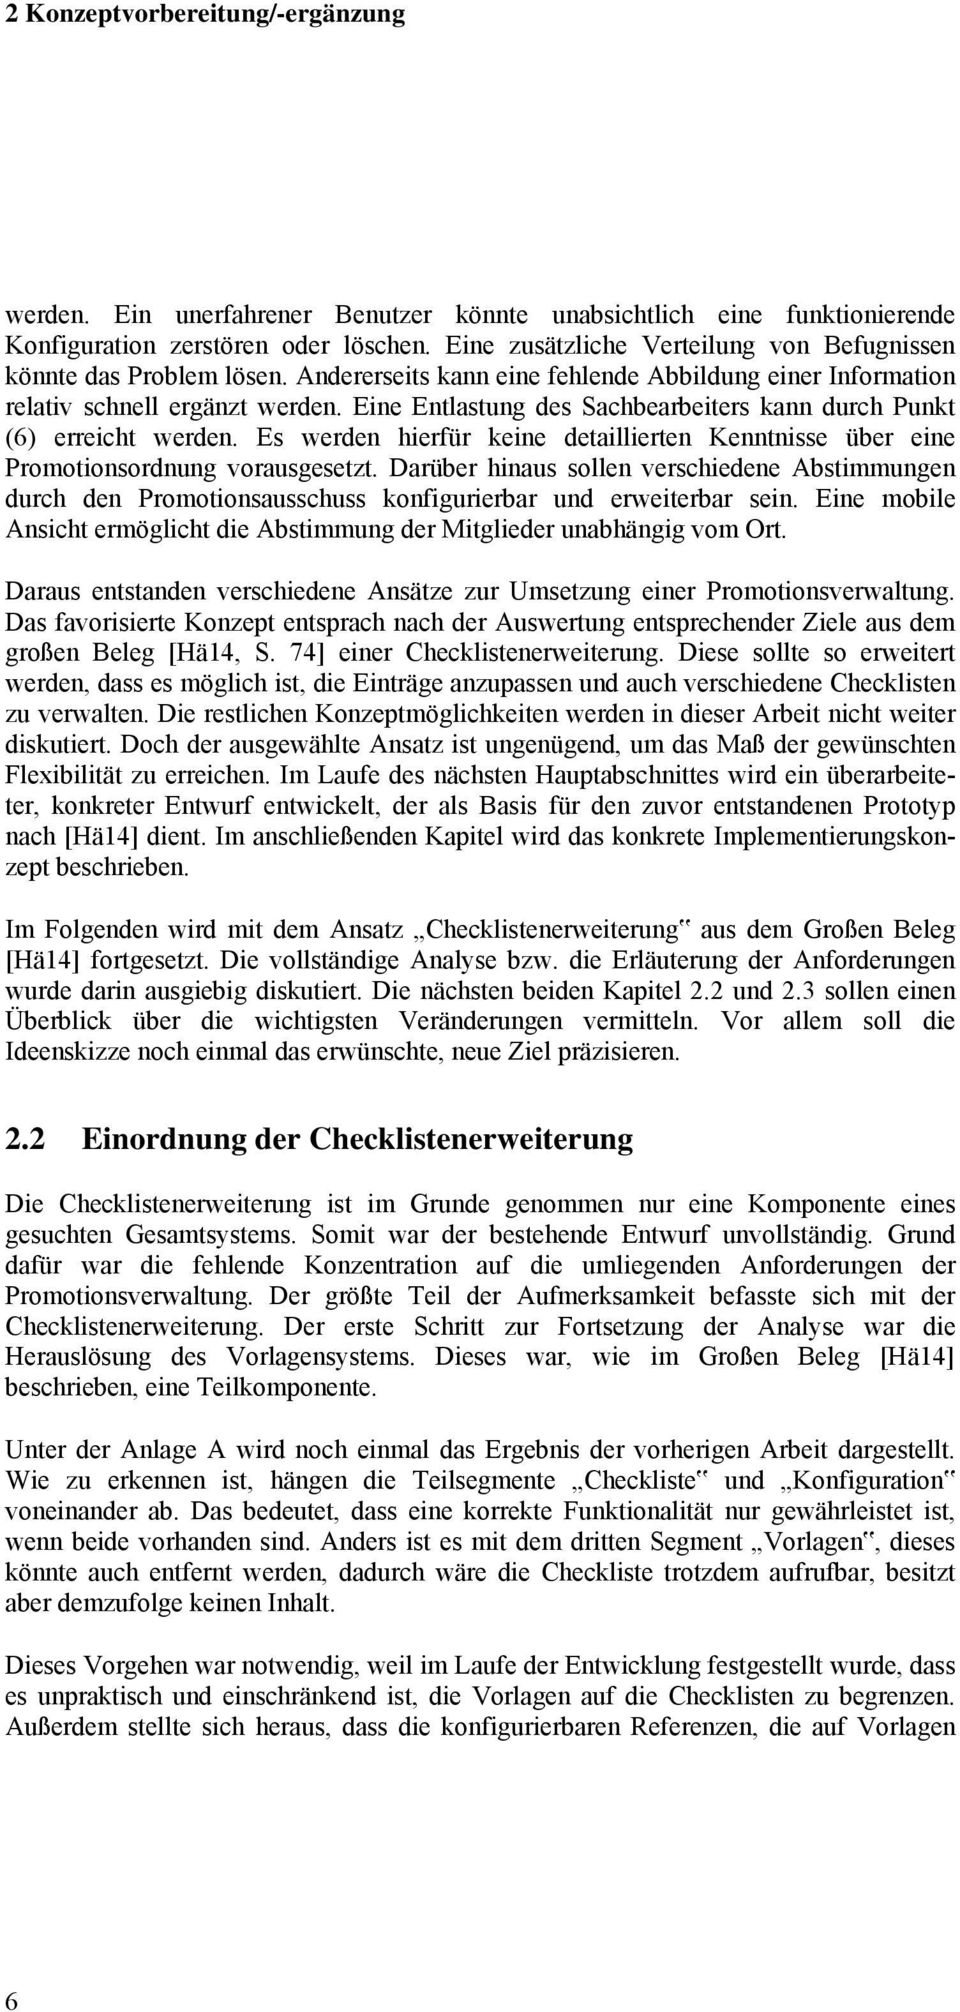 Fantastisch Lessons Erlernte Vorlagen Bilder - Entry Level Resume ...